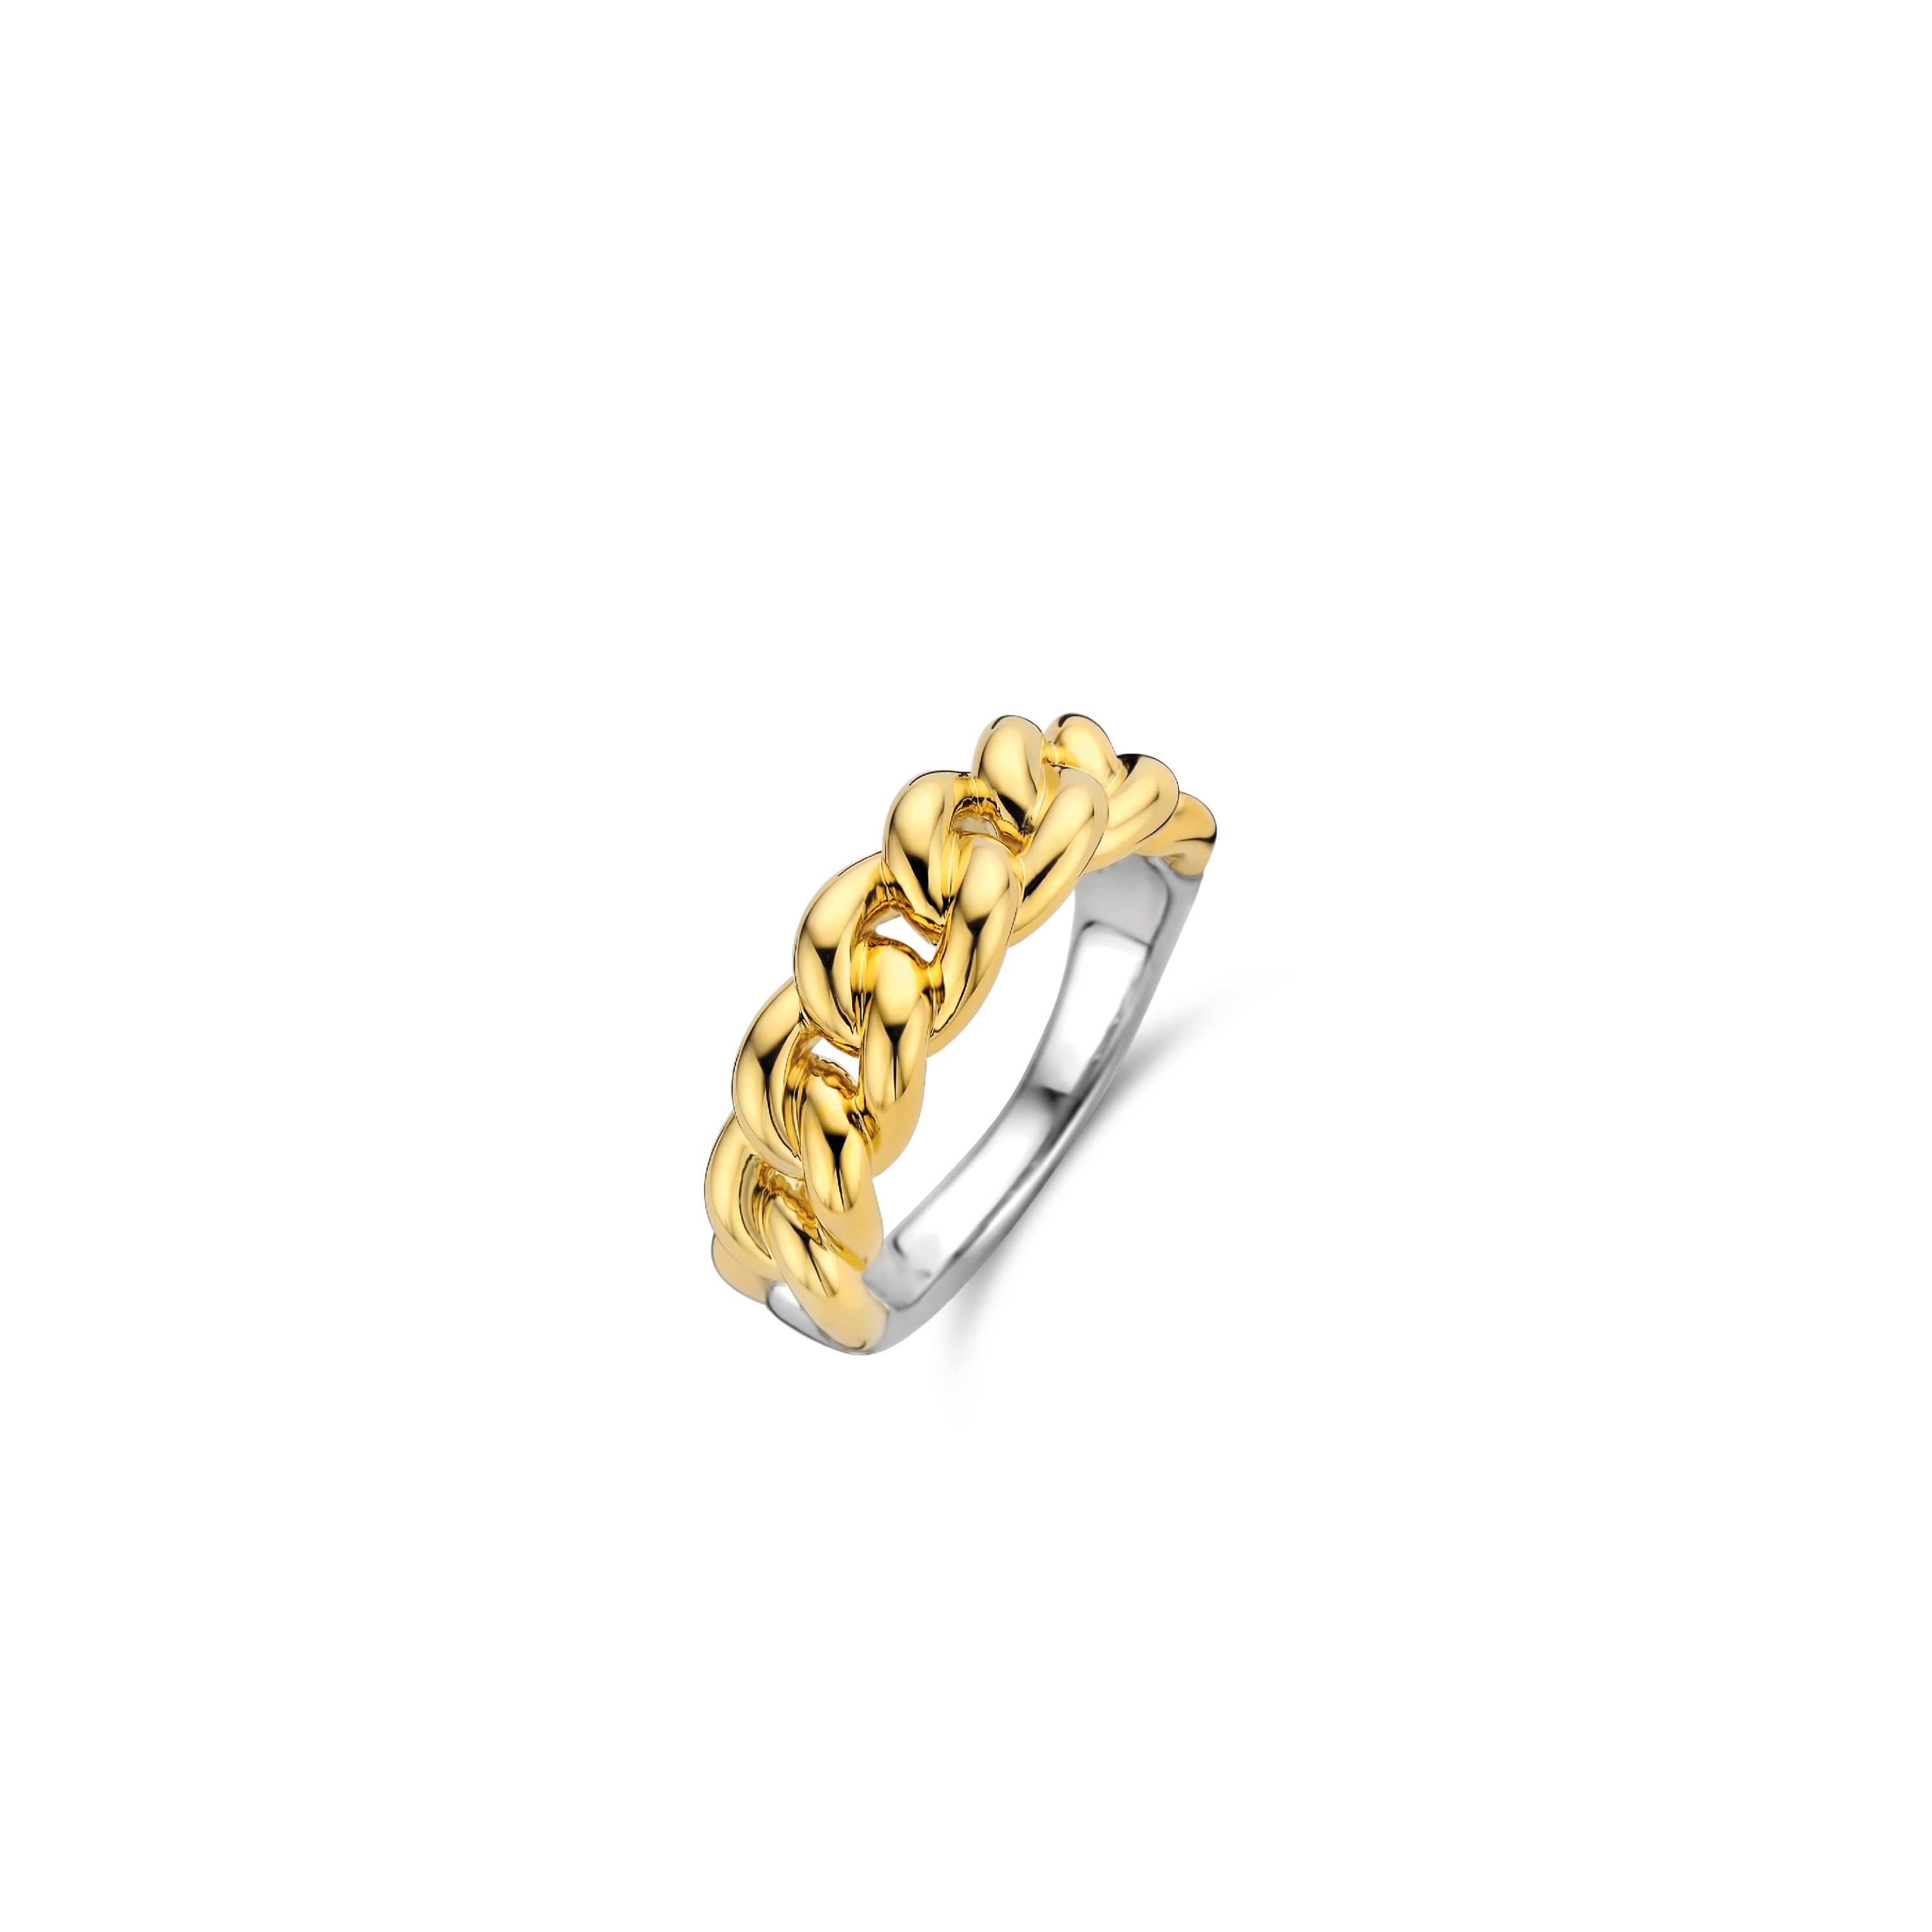 TI SENTO Milano Ring 12209SY Zilver gold plated Maat 54